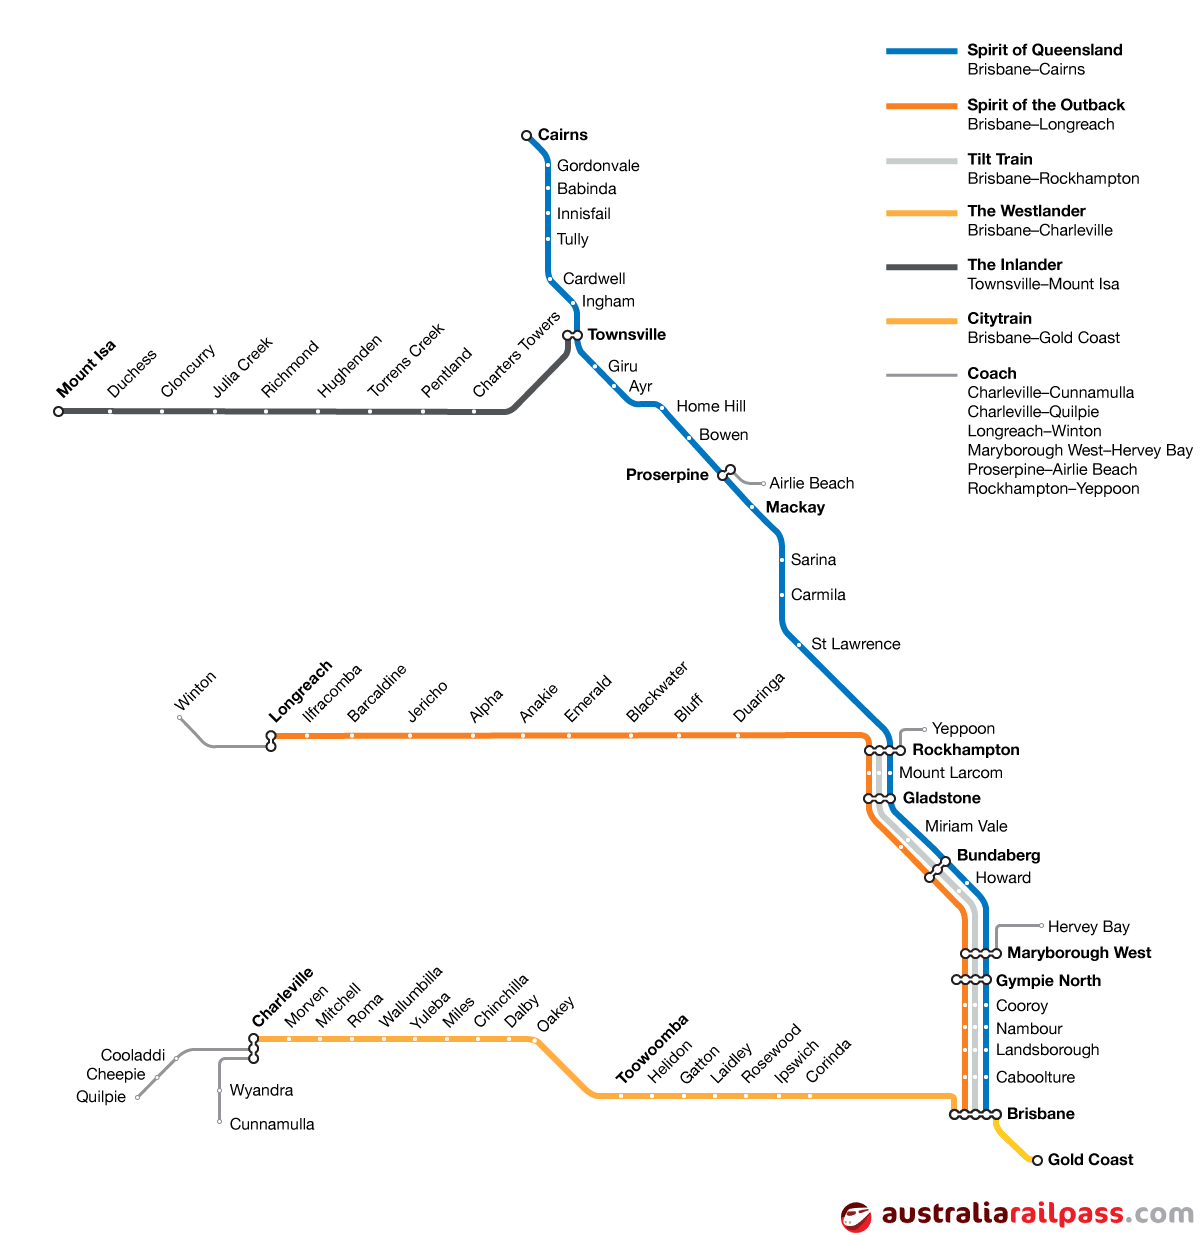 Map of rail lines covered by the Queensland Explorer Pass rail pass